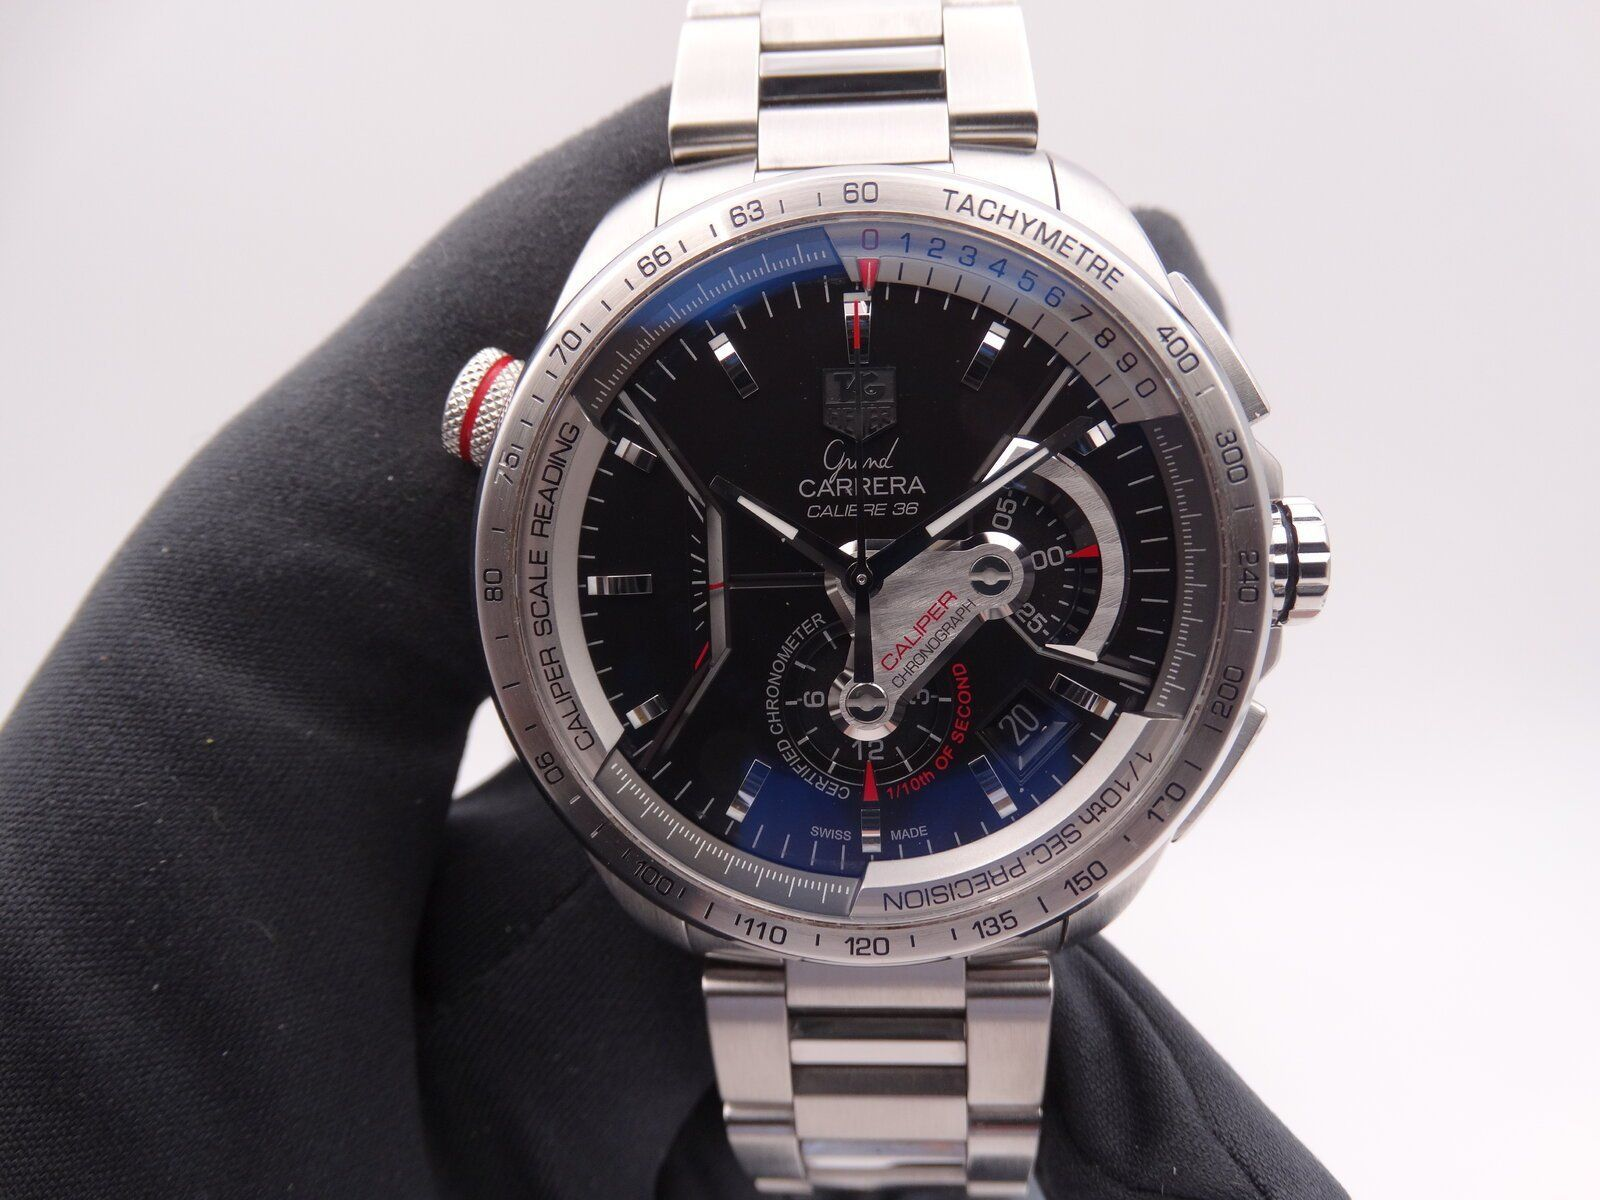 tag heuer grand carrera calibre 36 9396.JPG